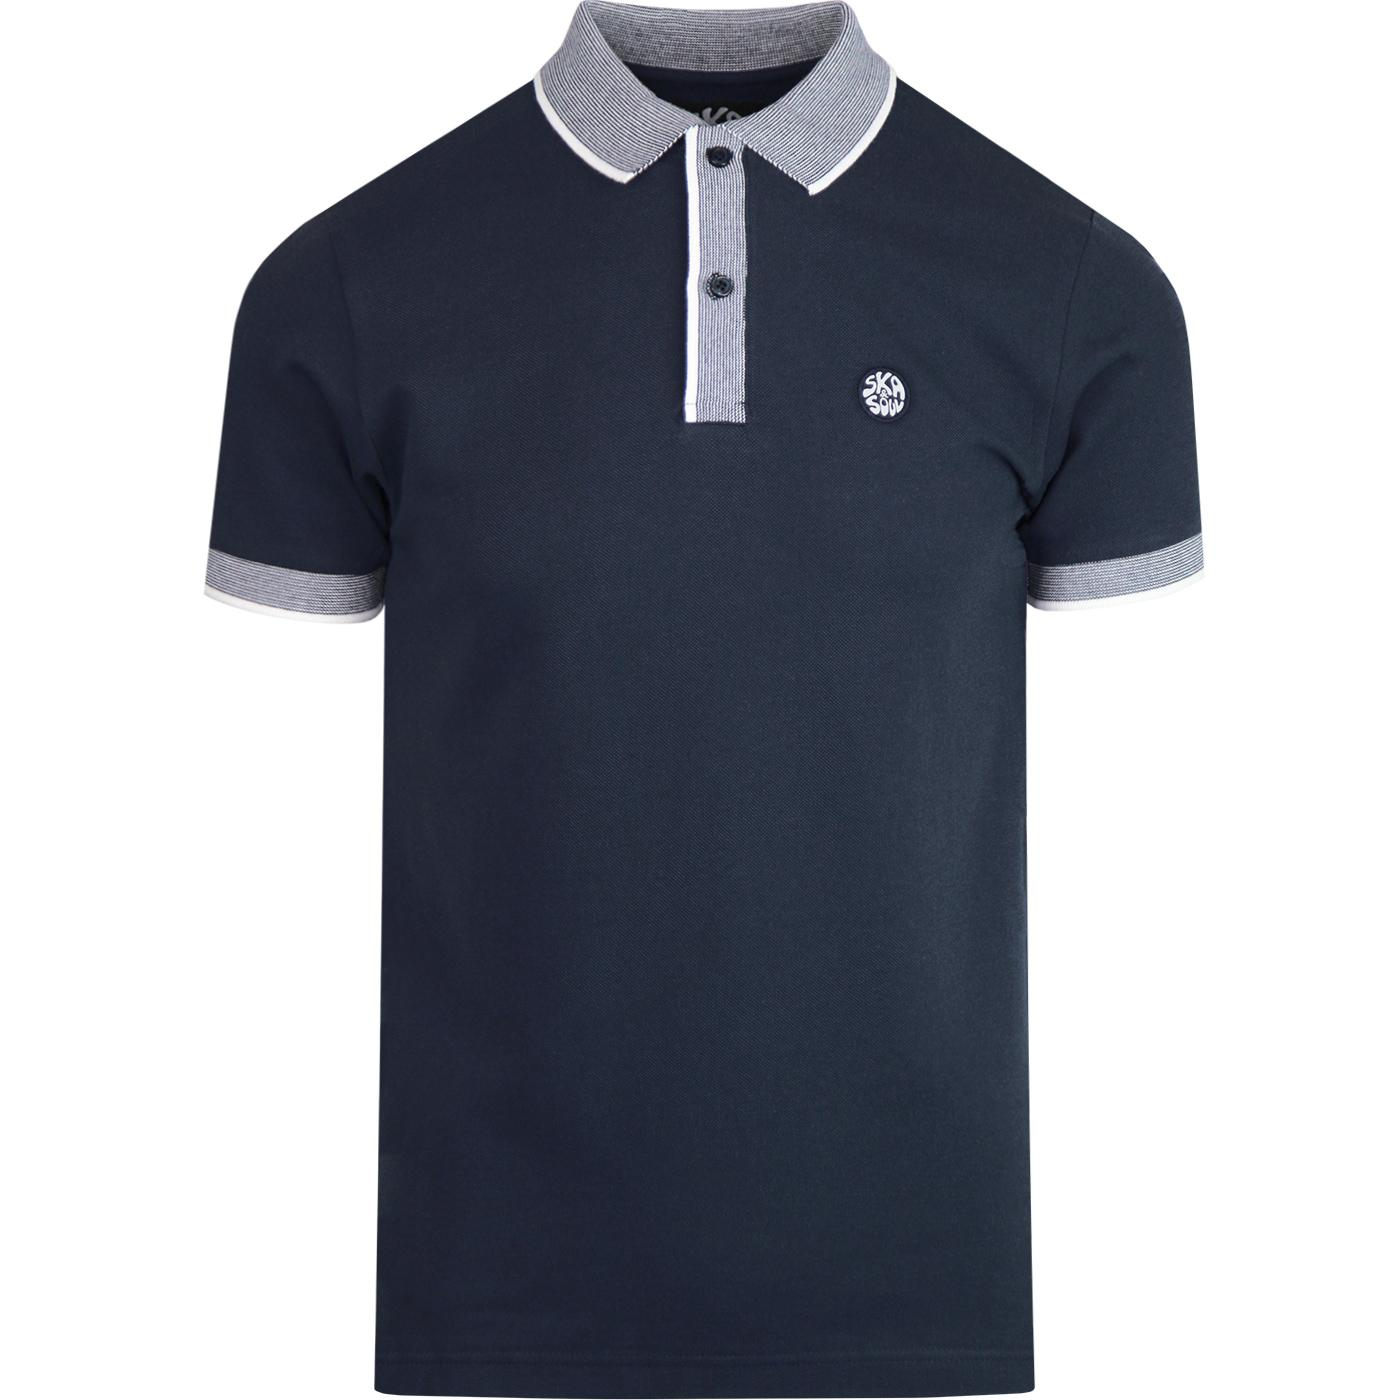 SKA & SOUL Mod Pin Stripe Trim Polo Shirt (Navy)